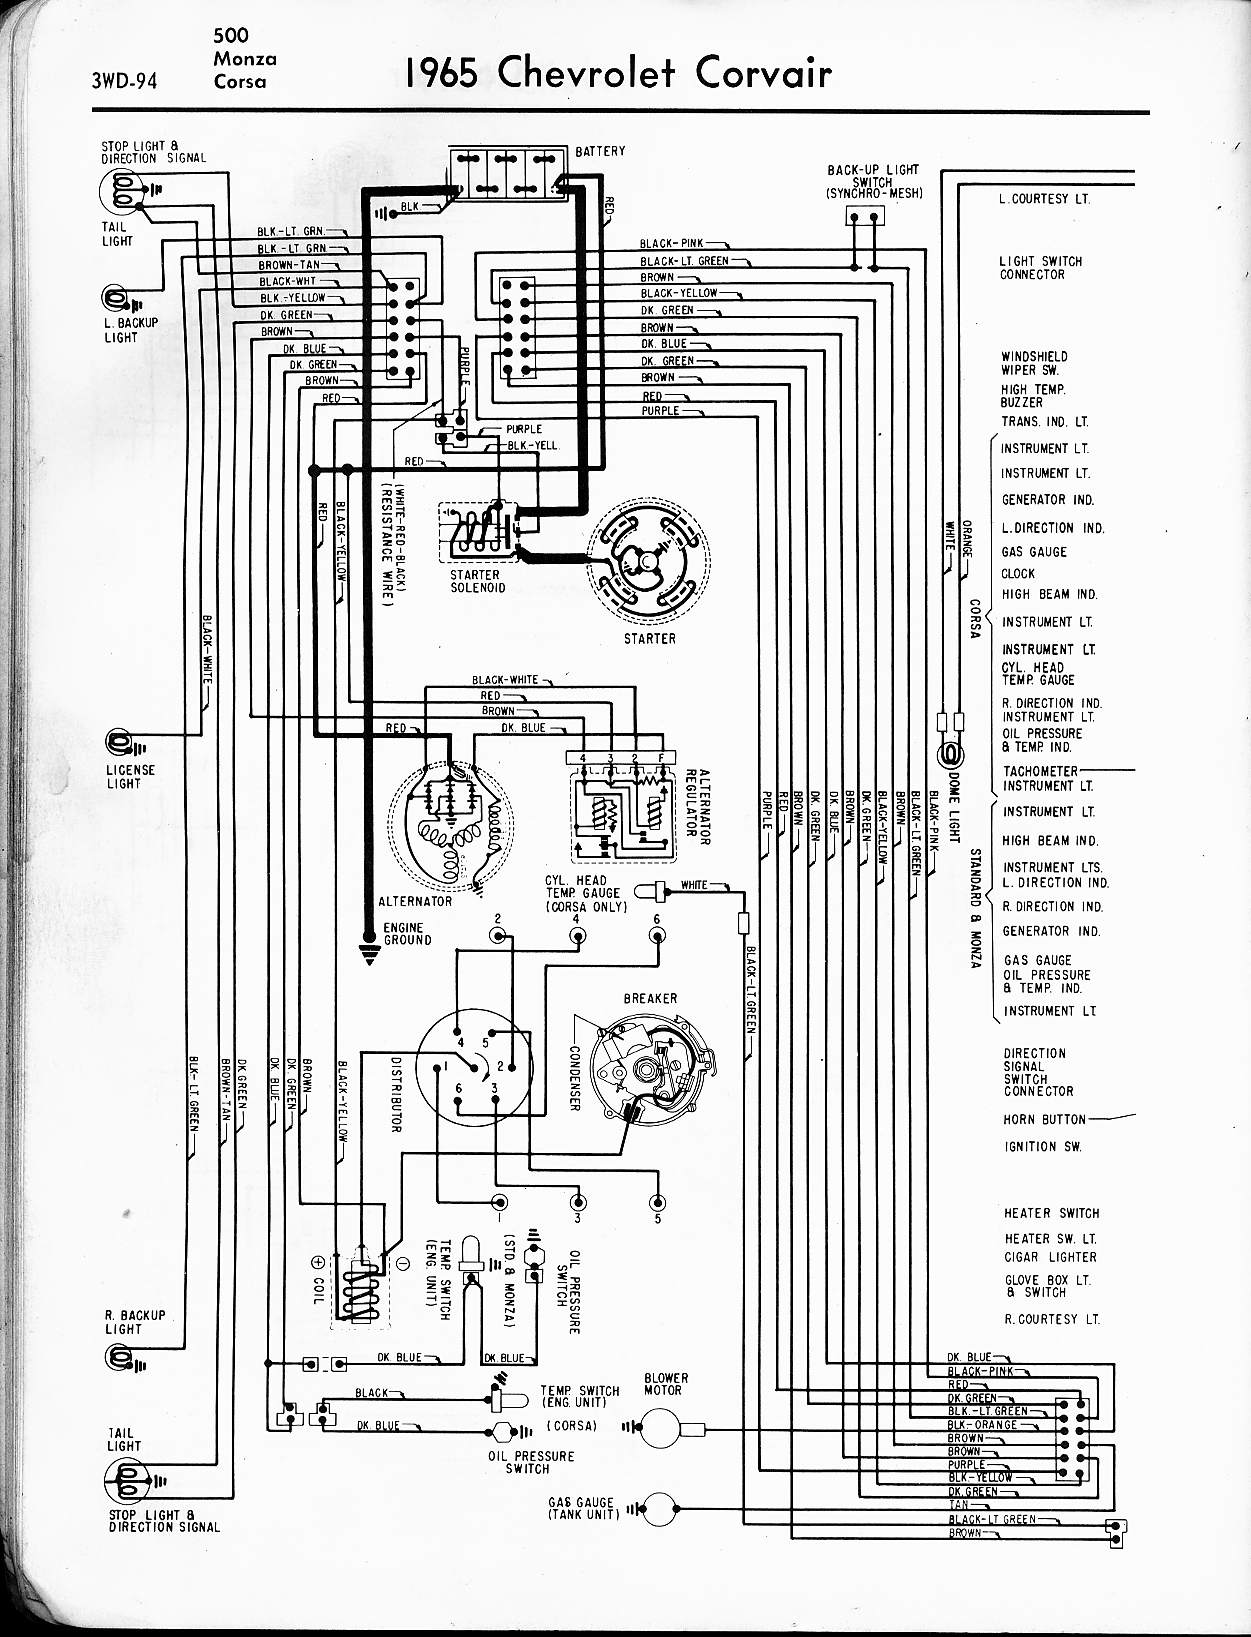 MWireChev64_3WD 094 57 65 chevy wiring diagrams 65 chevy wiring harness at readyjetset.co